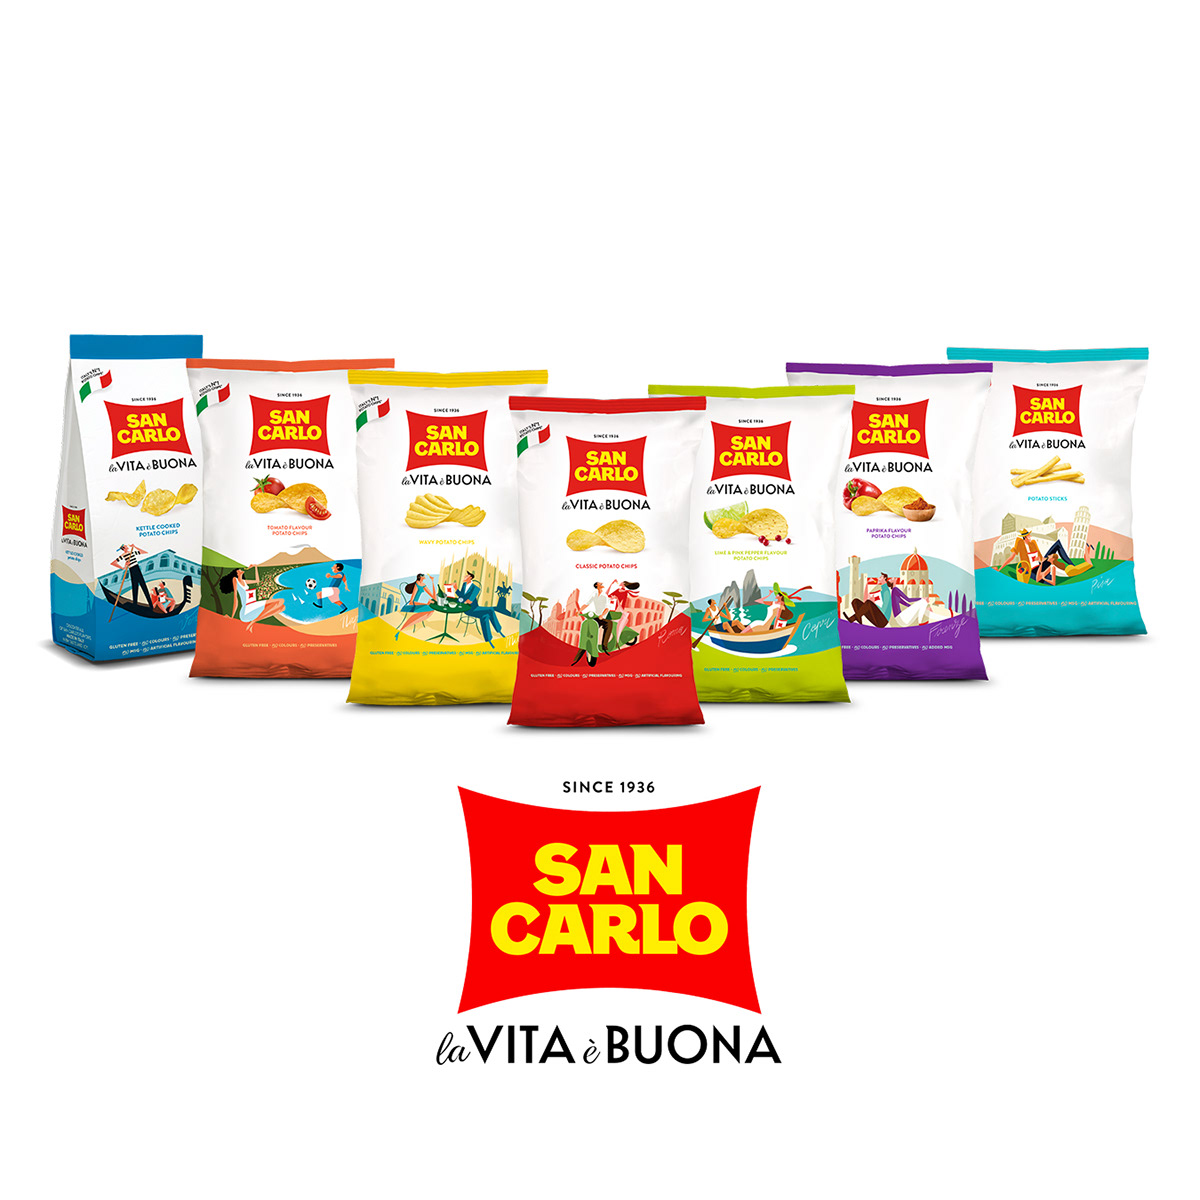 aperitivo,chips,foodie,Italy,MADEINITALY,Packaging,sancarlo,snack